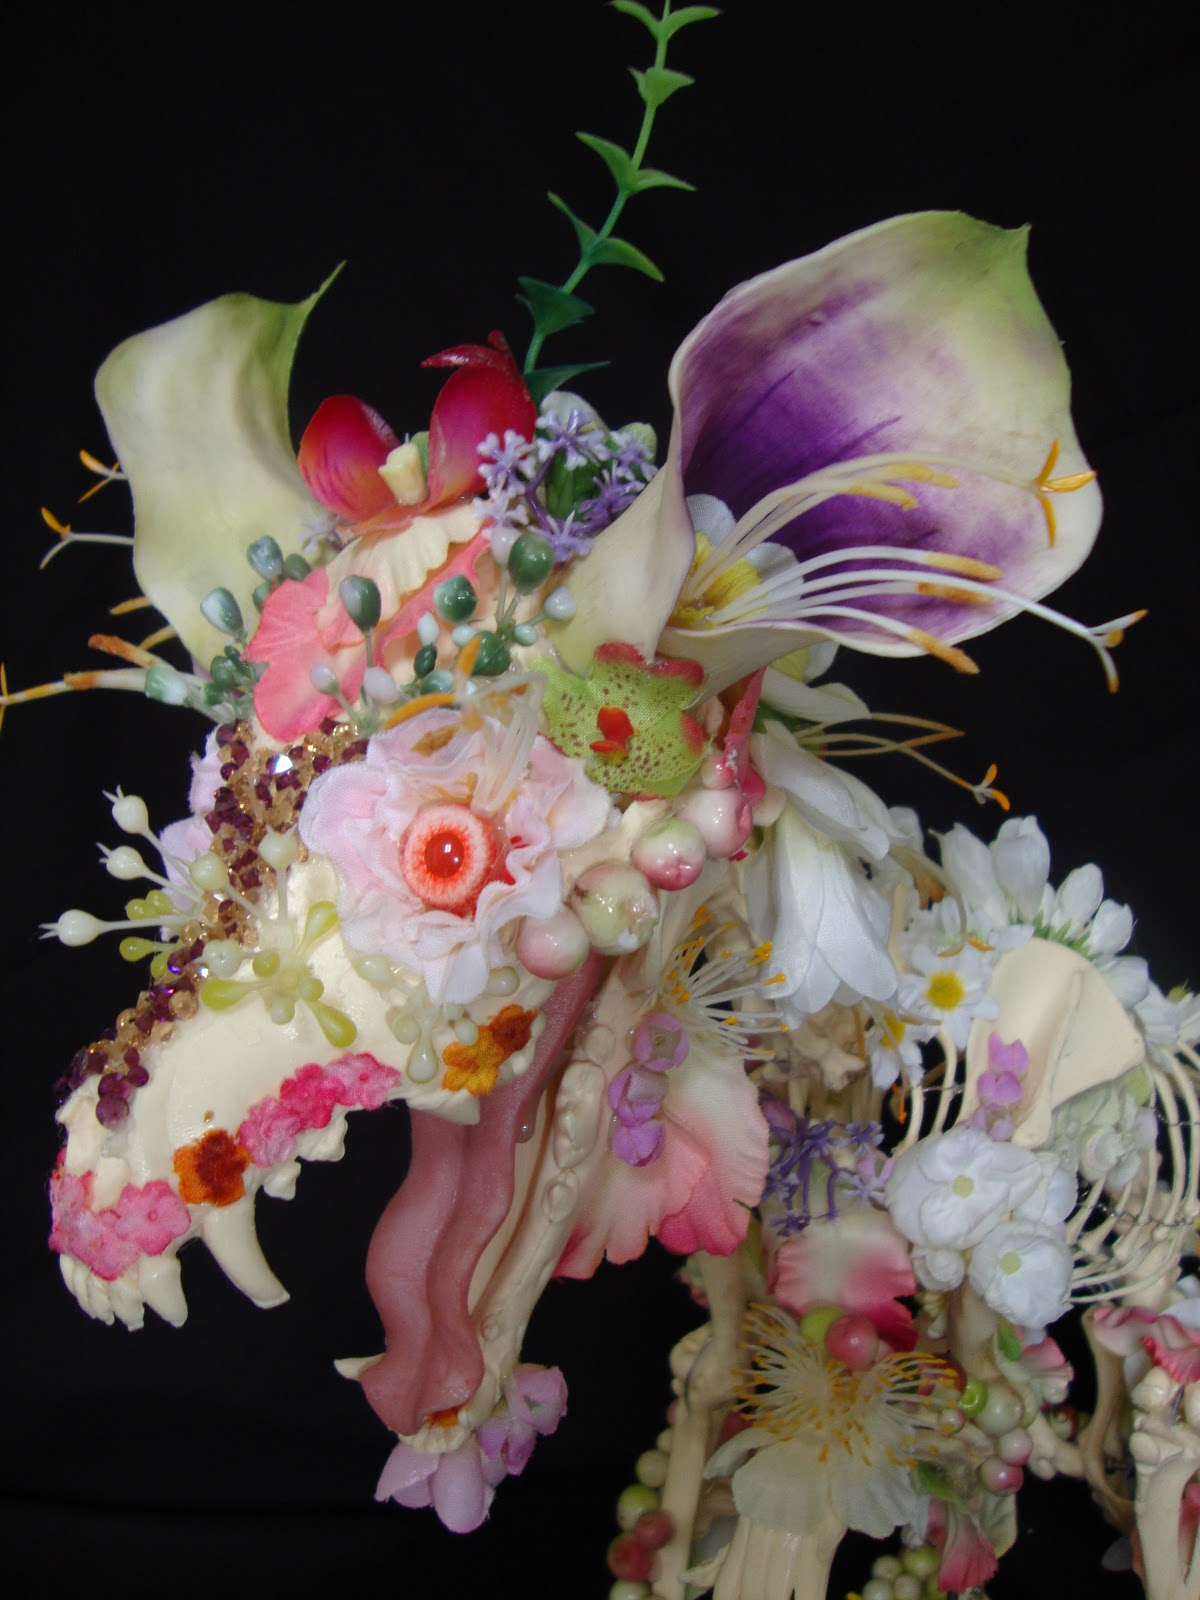 Animal Skeleton Sculptures Decorated With Flowers Designtaxi